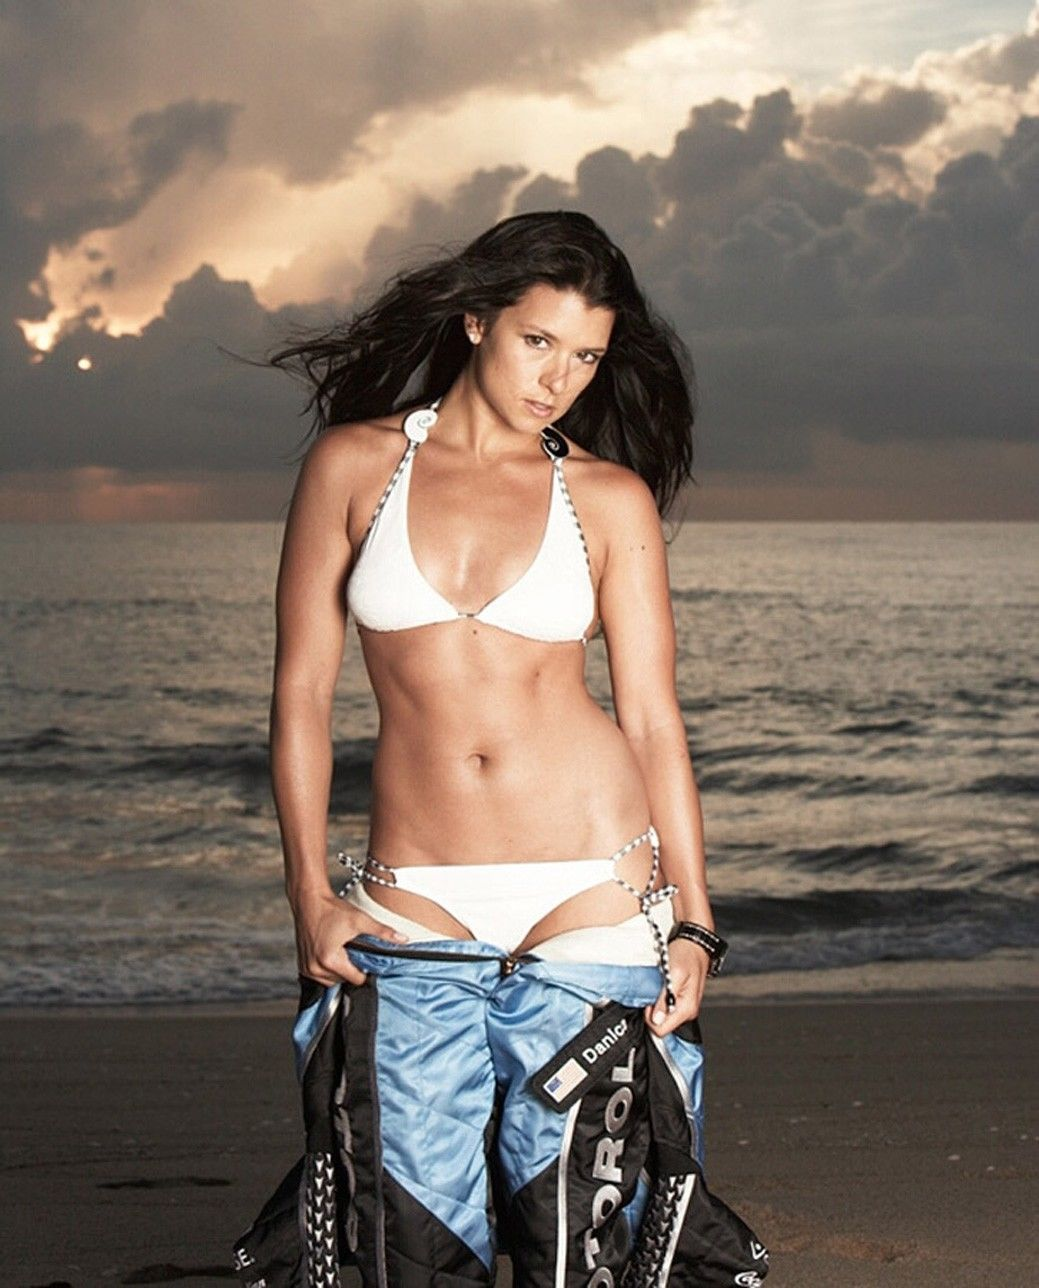 Danica Patrick awesome photos 1